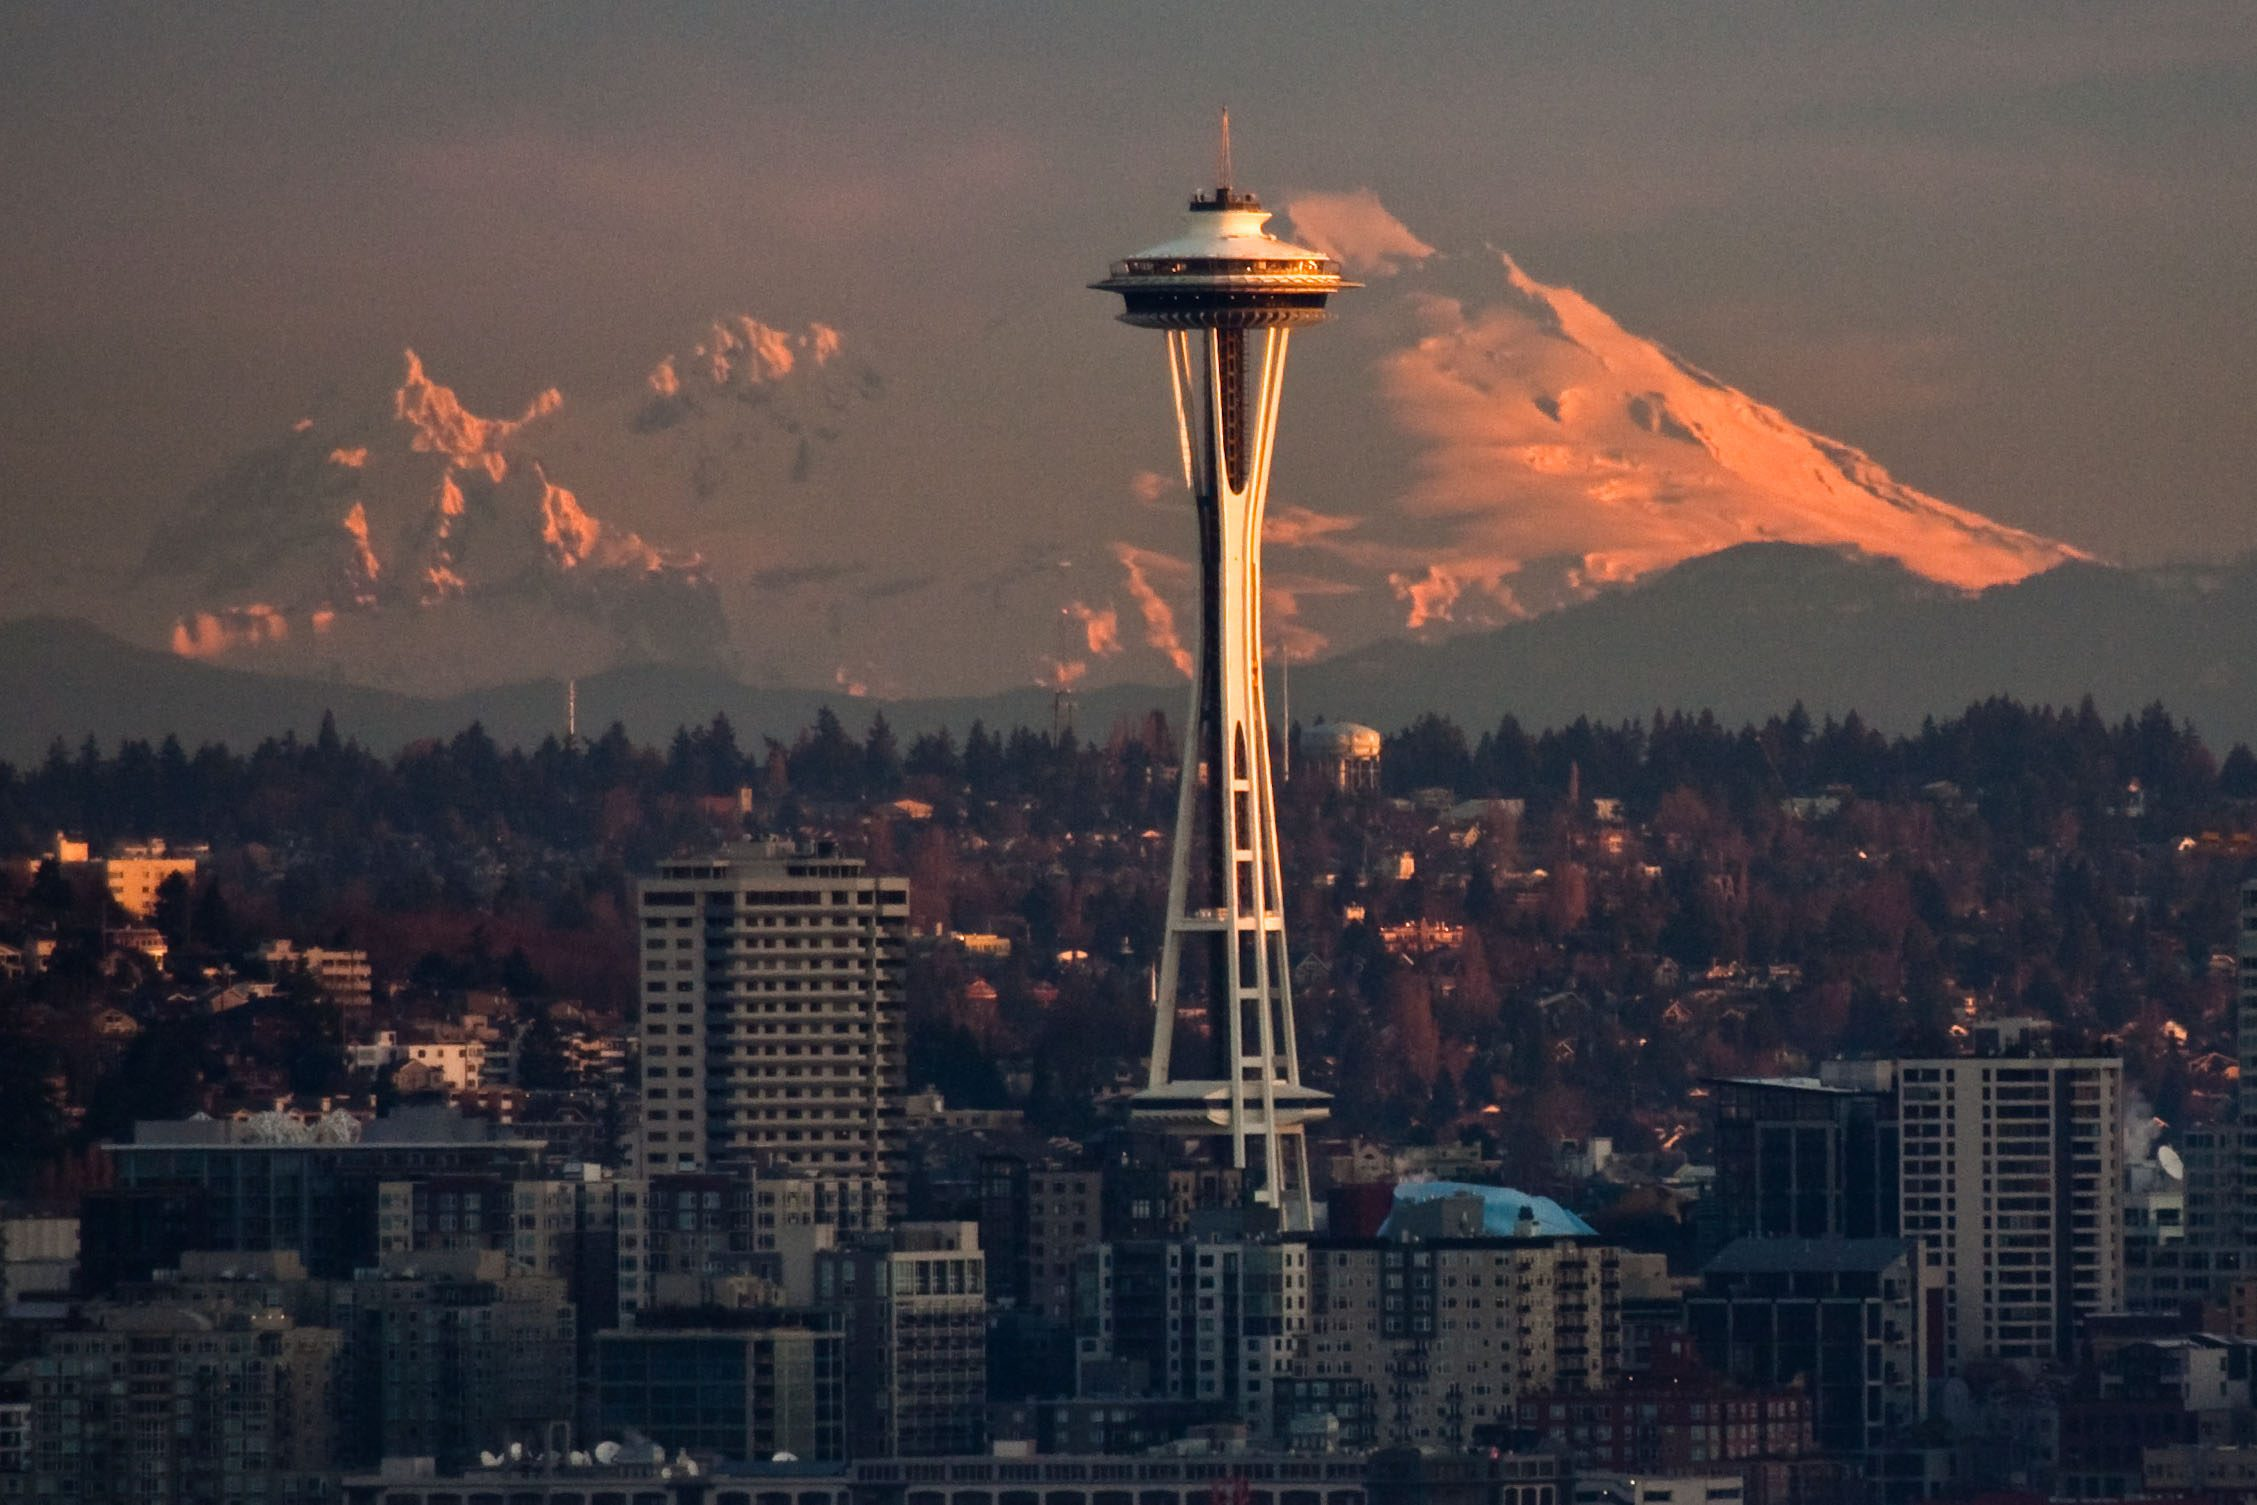 Sunrise Space Needle and Mountain (Mt. Baker)